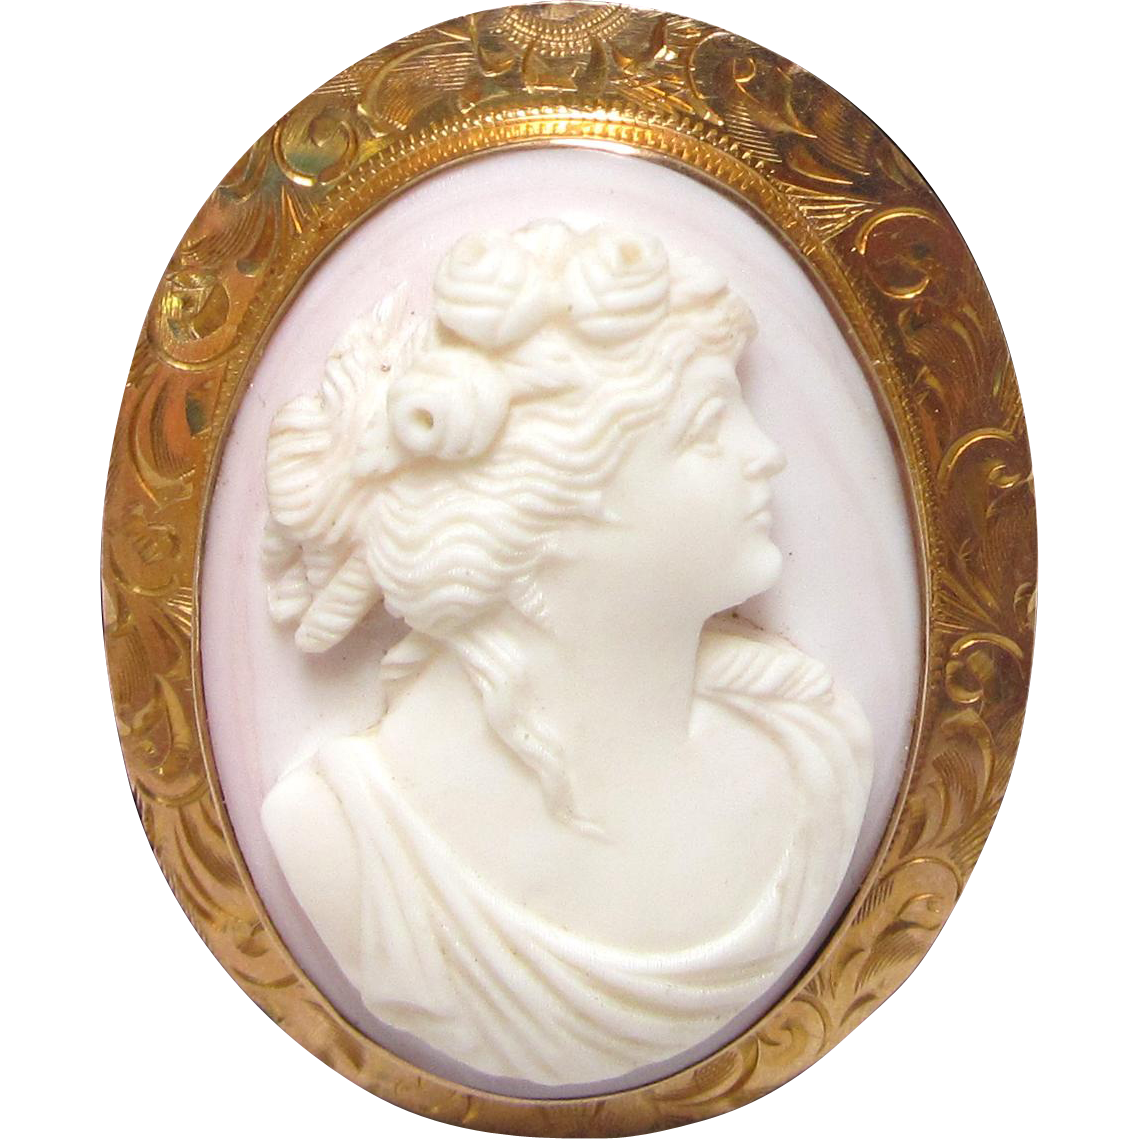 Vintage Cameo Brooch High Relief Carved Conch Shell Engraved 10 K Bezel Set